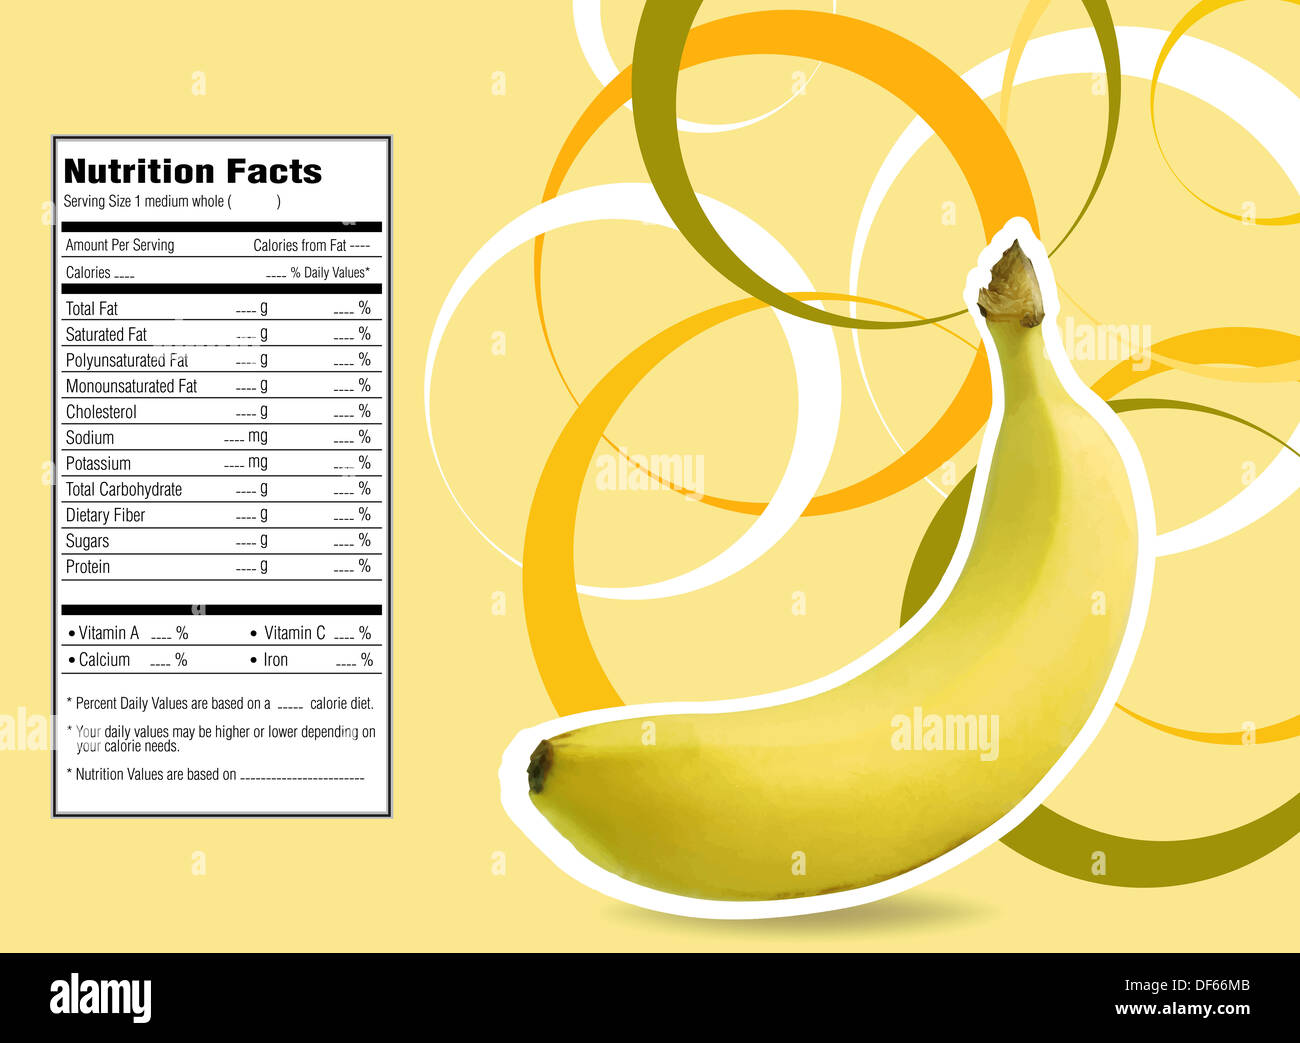 banana nutrition facts stock photos & banana nutrition facts stock